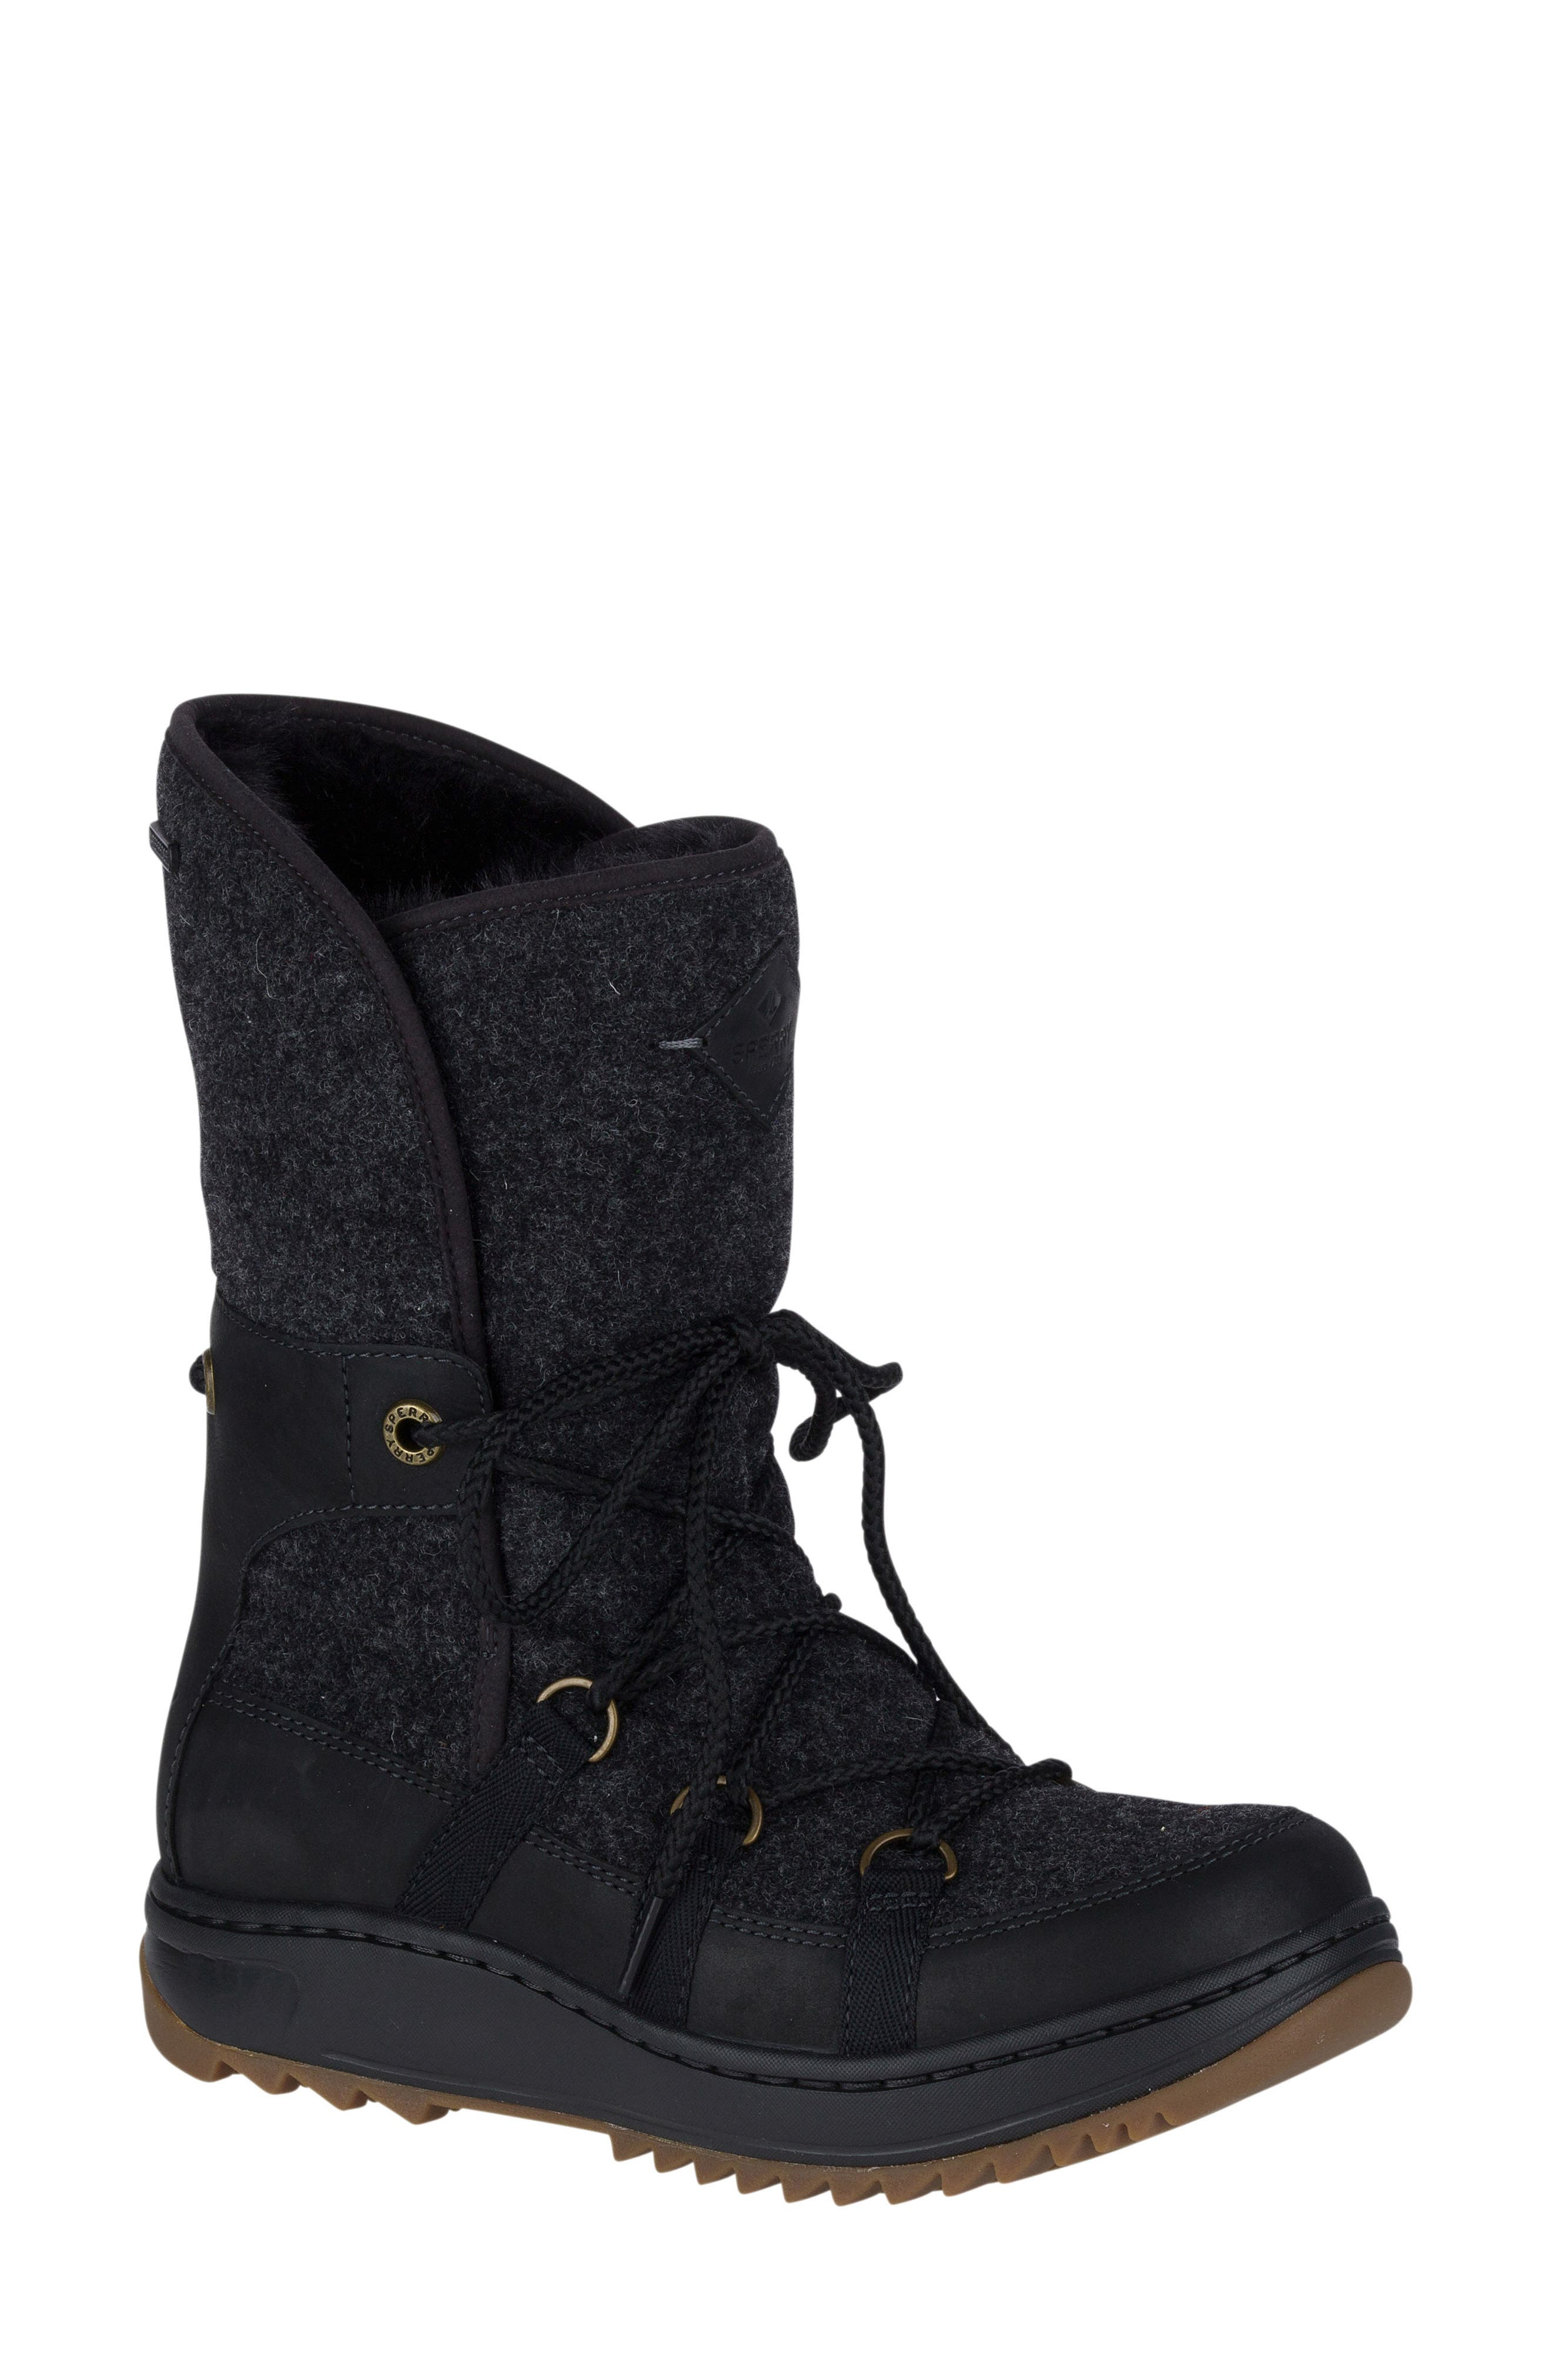 Powder Ice Cap Thinsulate Insulated Water Resistant Boot,                         Main,                         color, 001